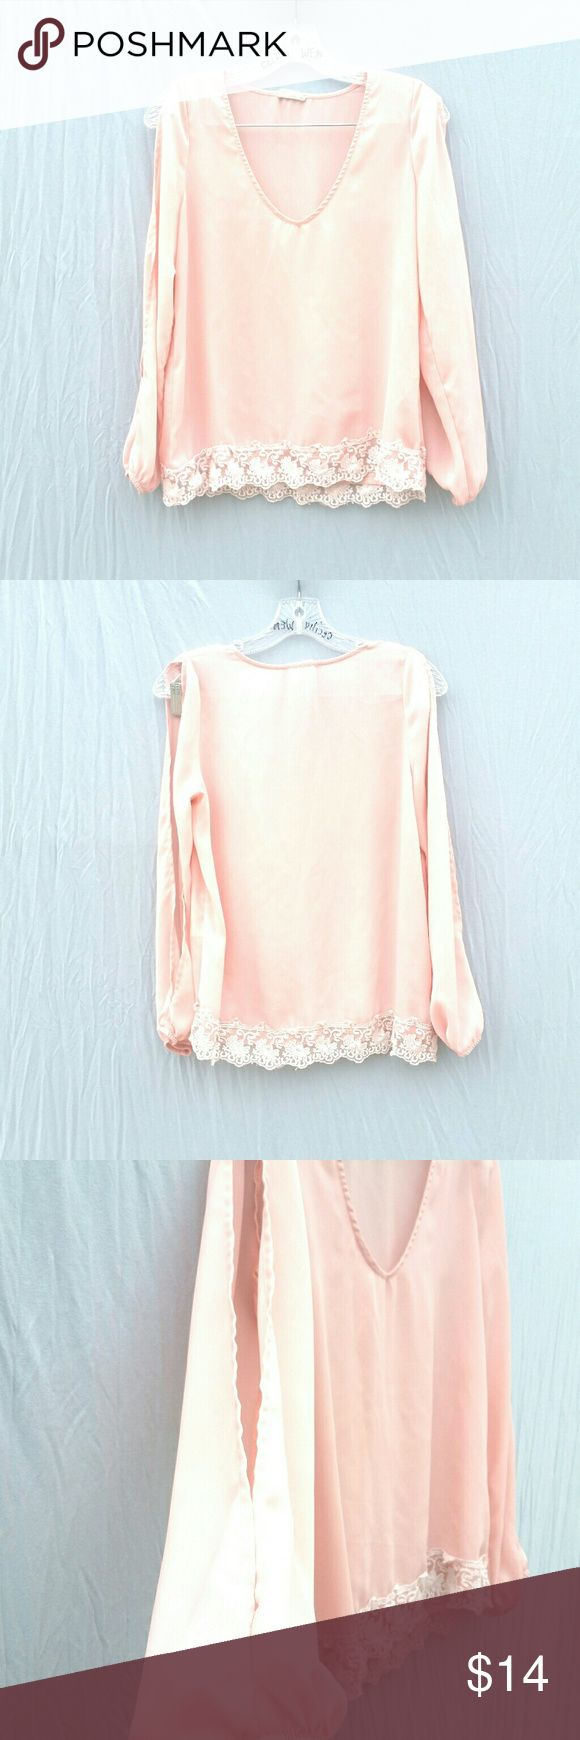 """TOBI pink chiffon slit sleeve blouse small Worn once light pink chiffon like blouse with white lace hem. Has slit sleeves and elastic at the wrists. V neckline. No major flaws or stains. Has some string fraying near one of the wrists but does not bother with wear. Just too big on my petite frame which is why I'm selling it.  Tag Size : Small  Length: 22"""" Loose fit.   #tothedunes pink lace hem chiffon lightweight hipster Boho floral festival summer cute spring casual date cut Sleeve bell slit…"""